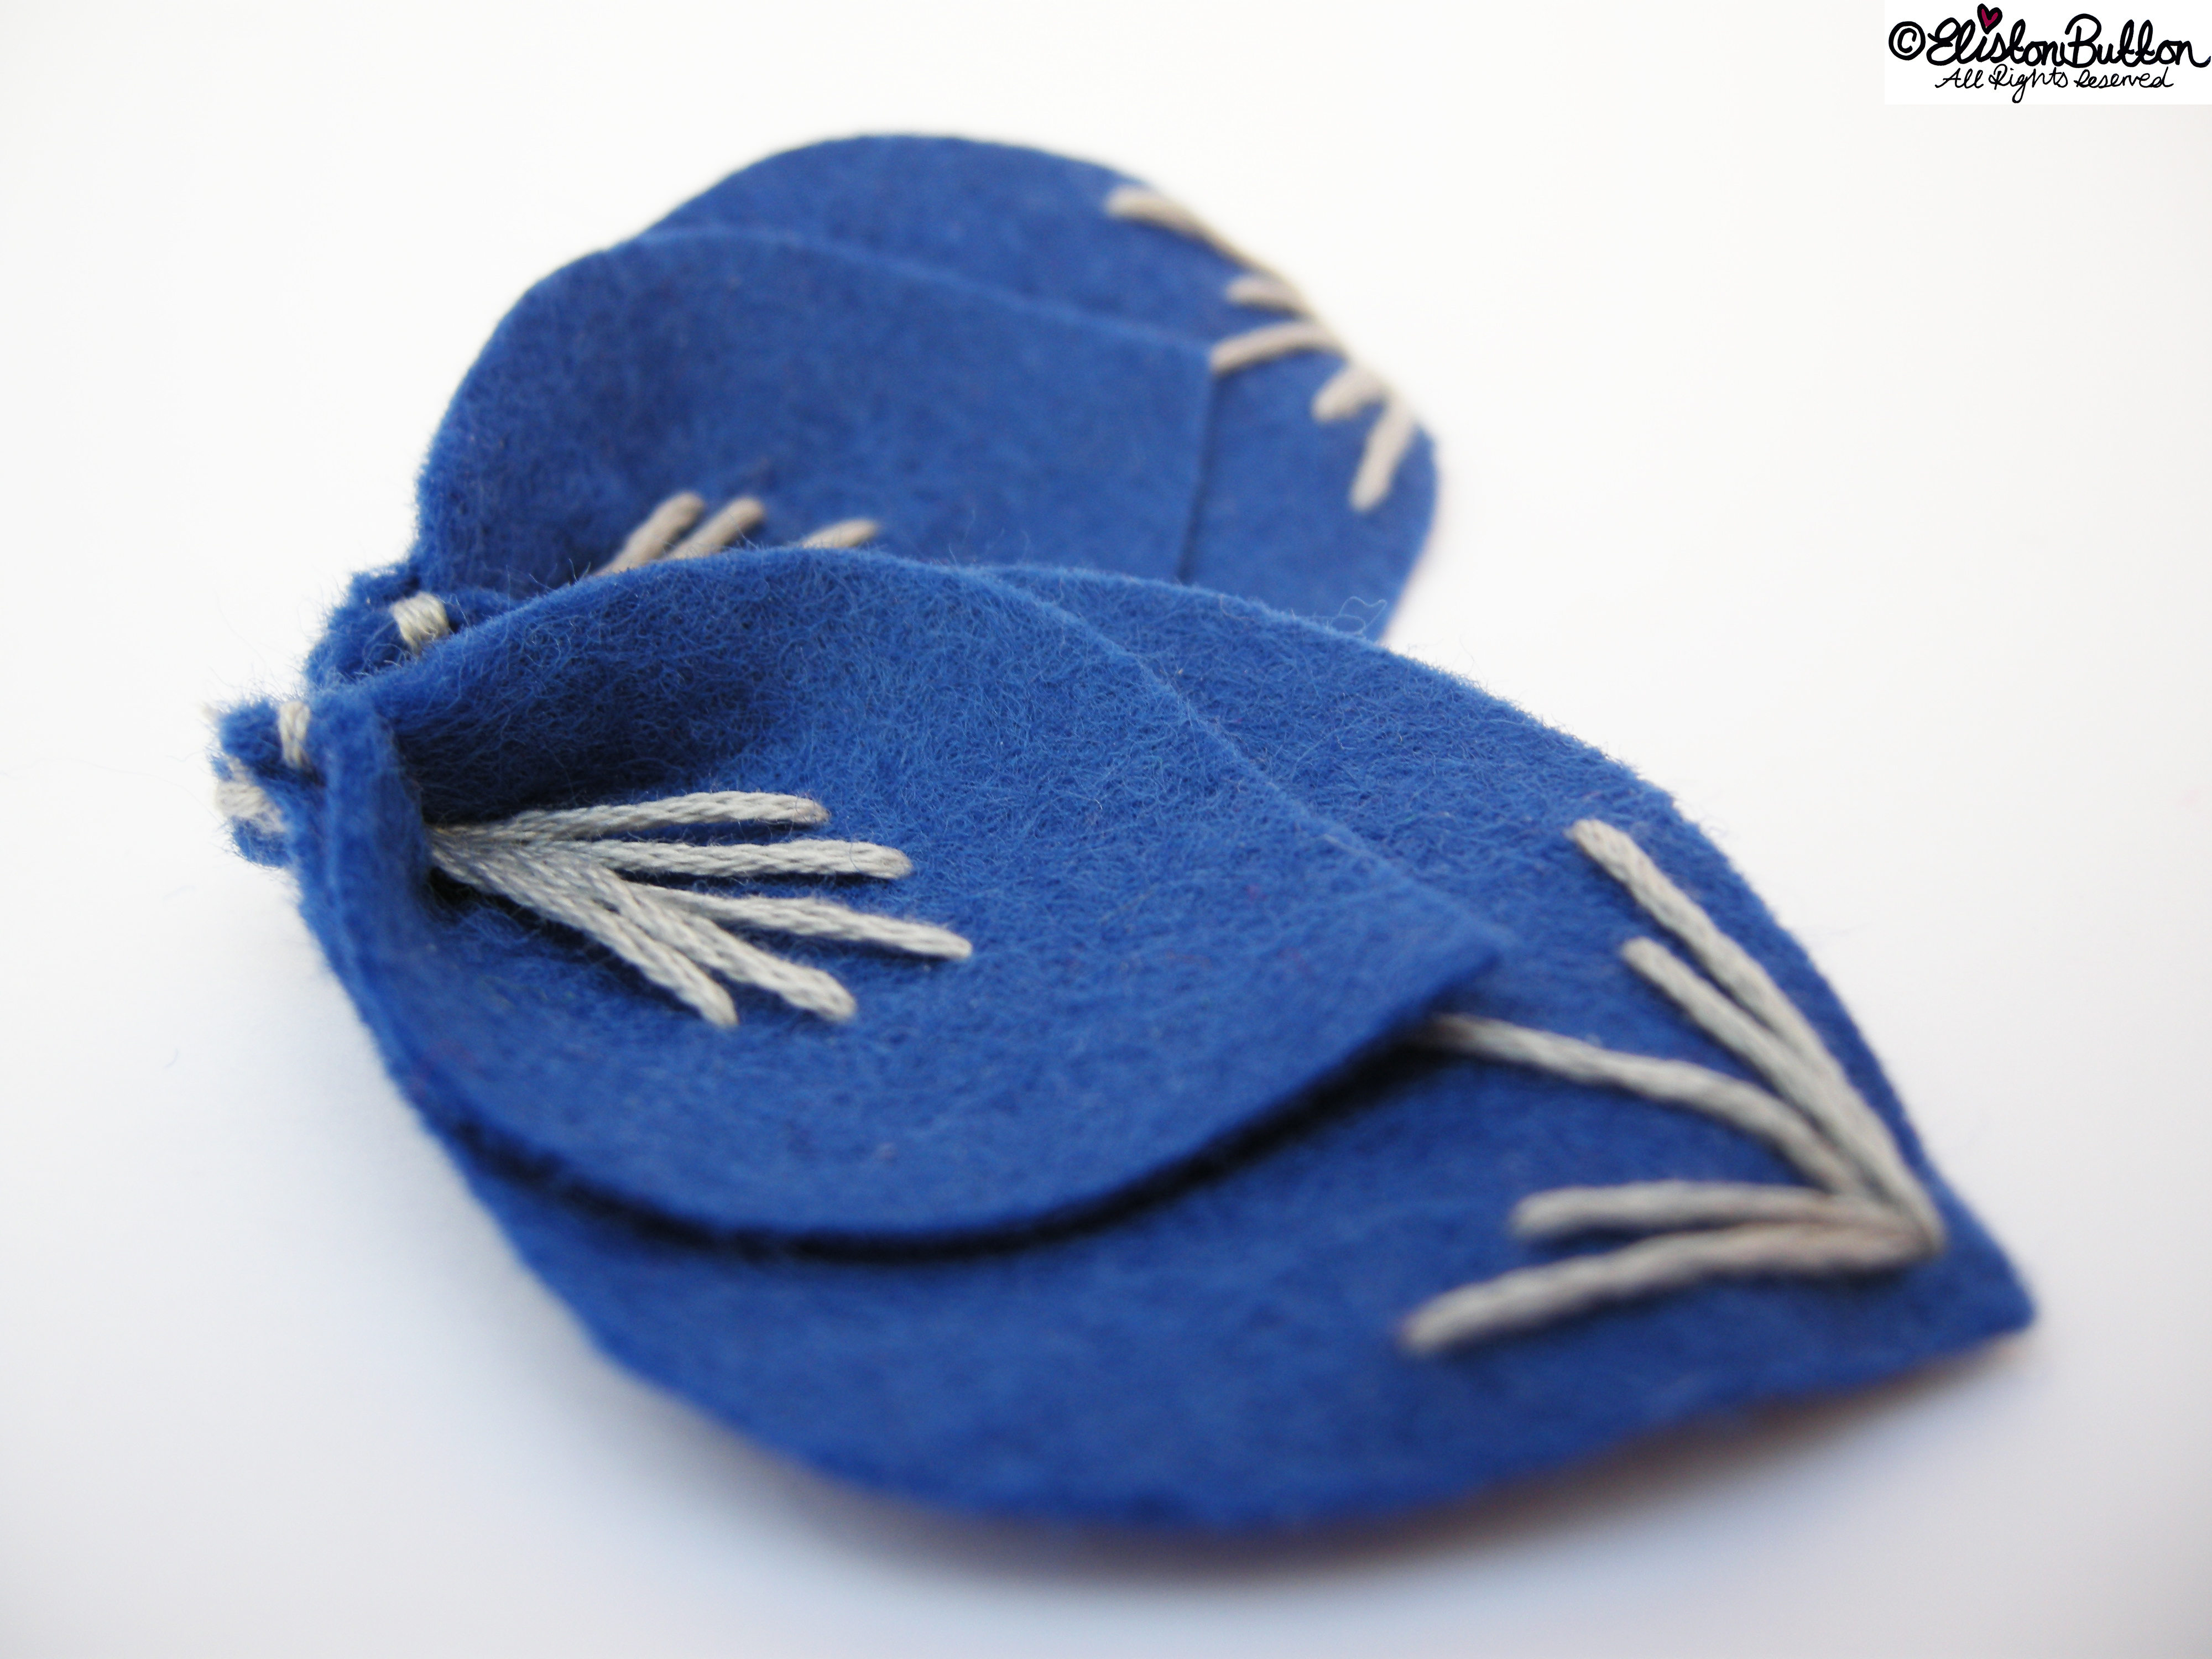 Embroidered Felt Flower Petals - Art Deco Inspired Two Piece Petals - 27 Before 27 - Out of the Blue at www.elistonbutton.com - Eliston Button - That Crafty Kid – Art, Design, Craft & Adventure.